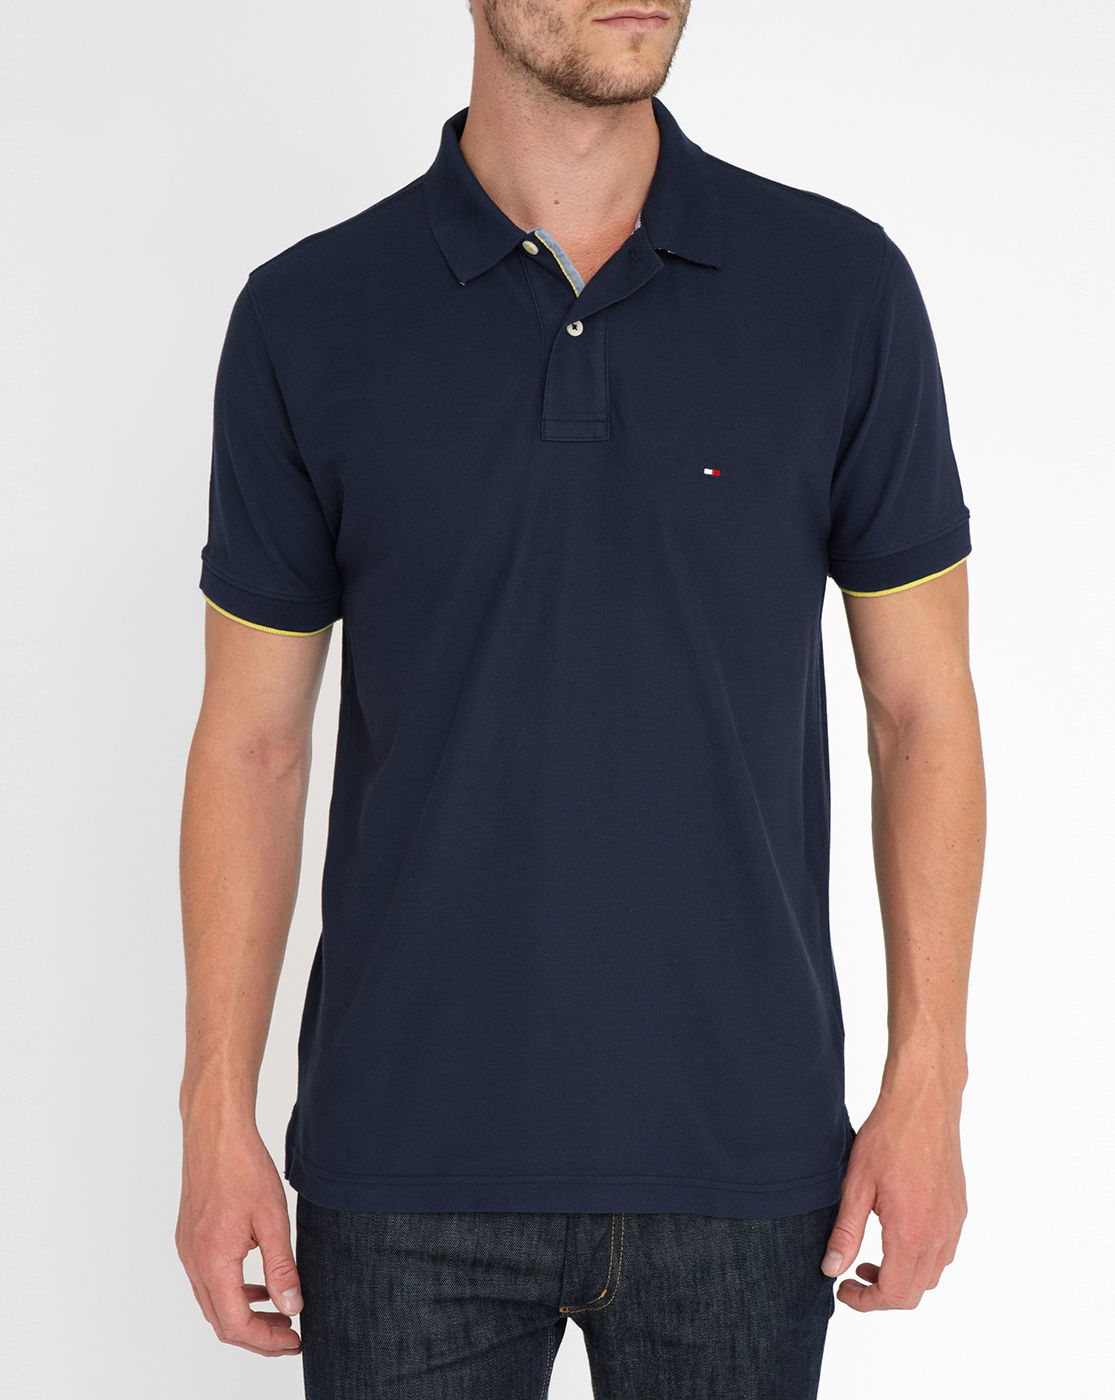 tommy hilfiger navy polo shirt with striped collar revers. Black Bedroom Furniture Sets. Home Design Ideas